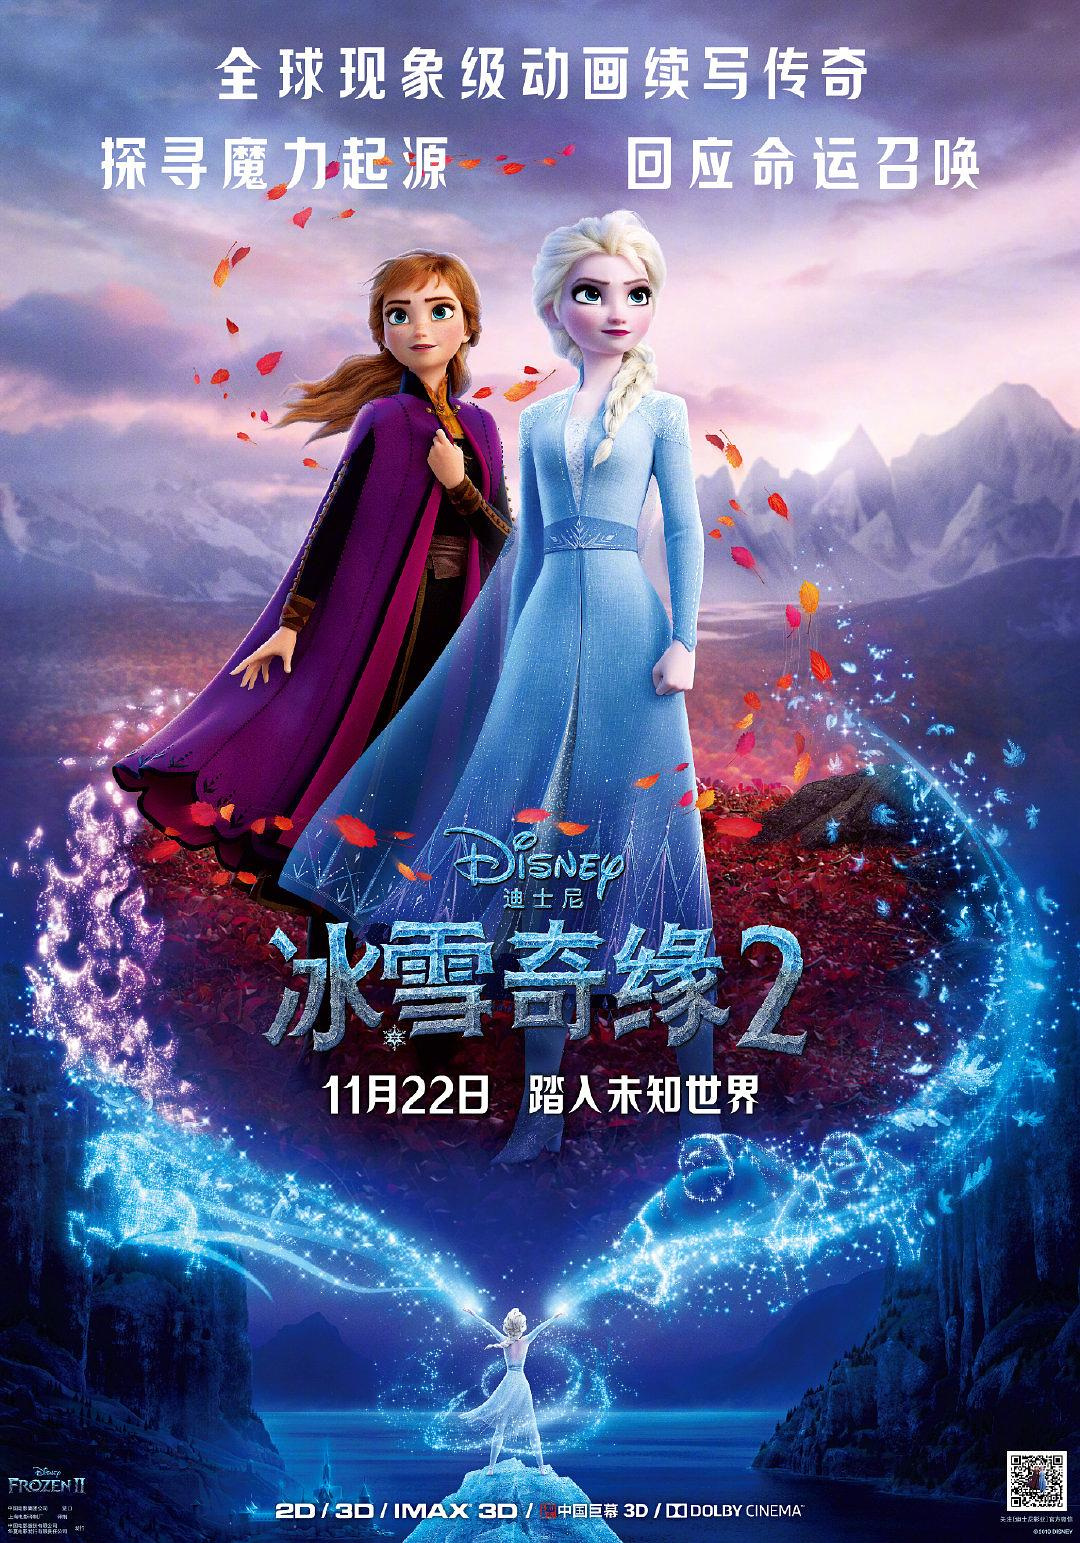 悠悠MP4_MP4电影下载_冰雪奇缘2 Frozen.II.2019.1080p.BluRay.x264-YOL0W 5.49GB